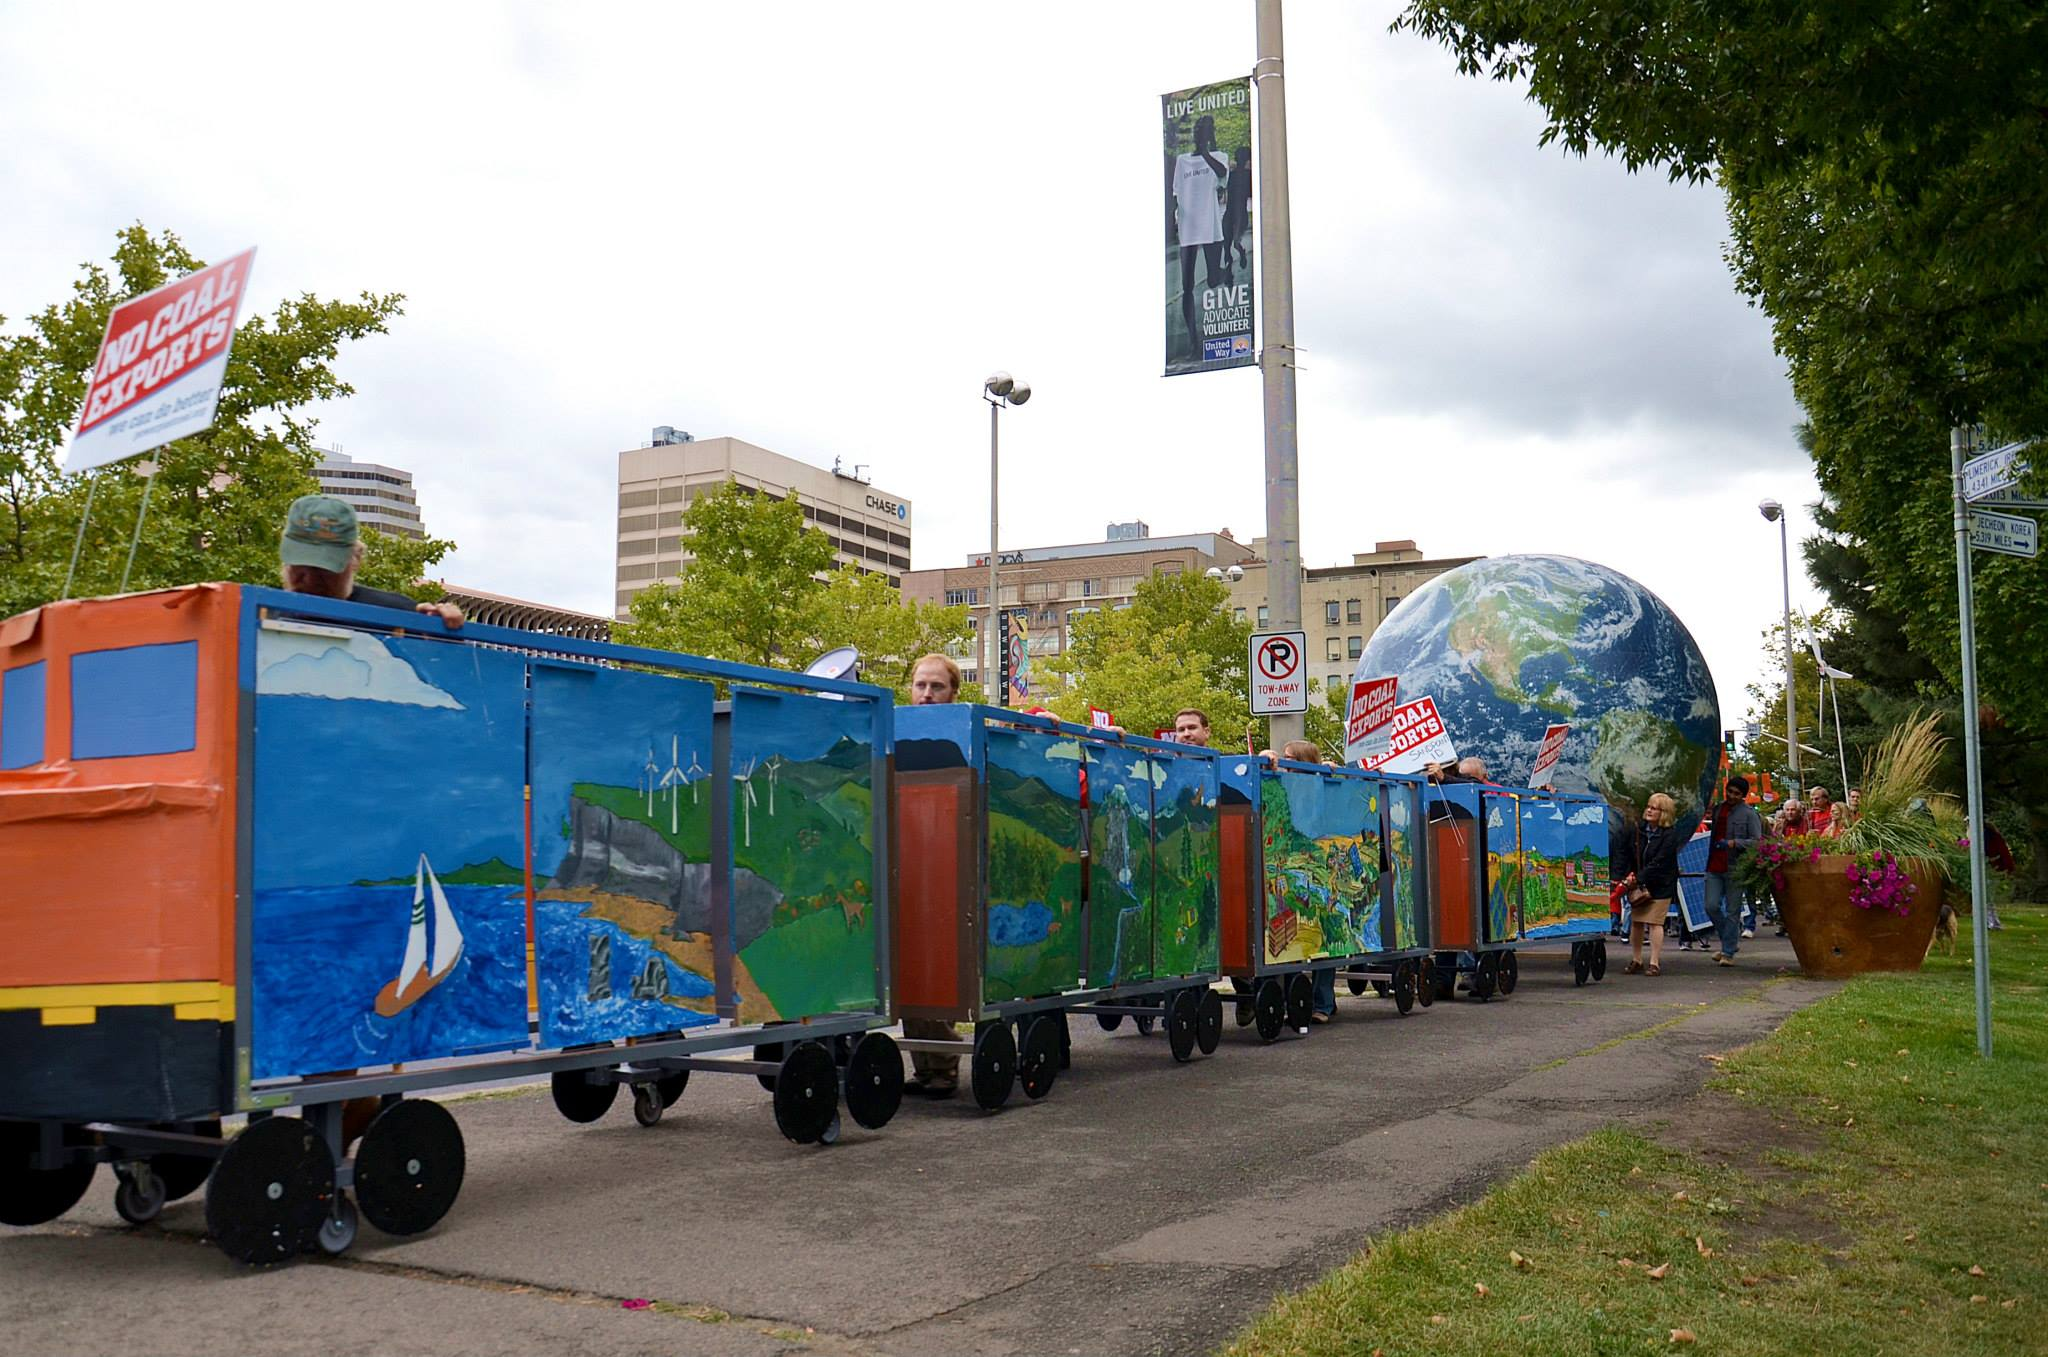 Spokane Coal Train Transformed Into Ecotopia By Activists at Coal Export Hearing